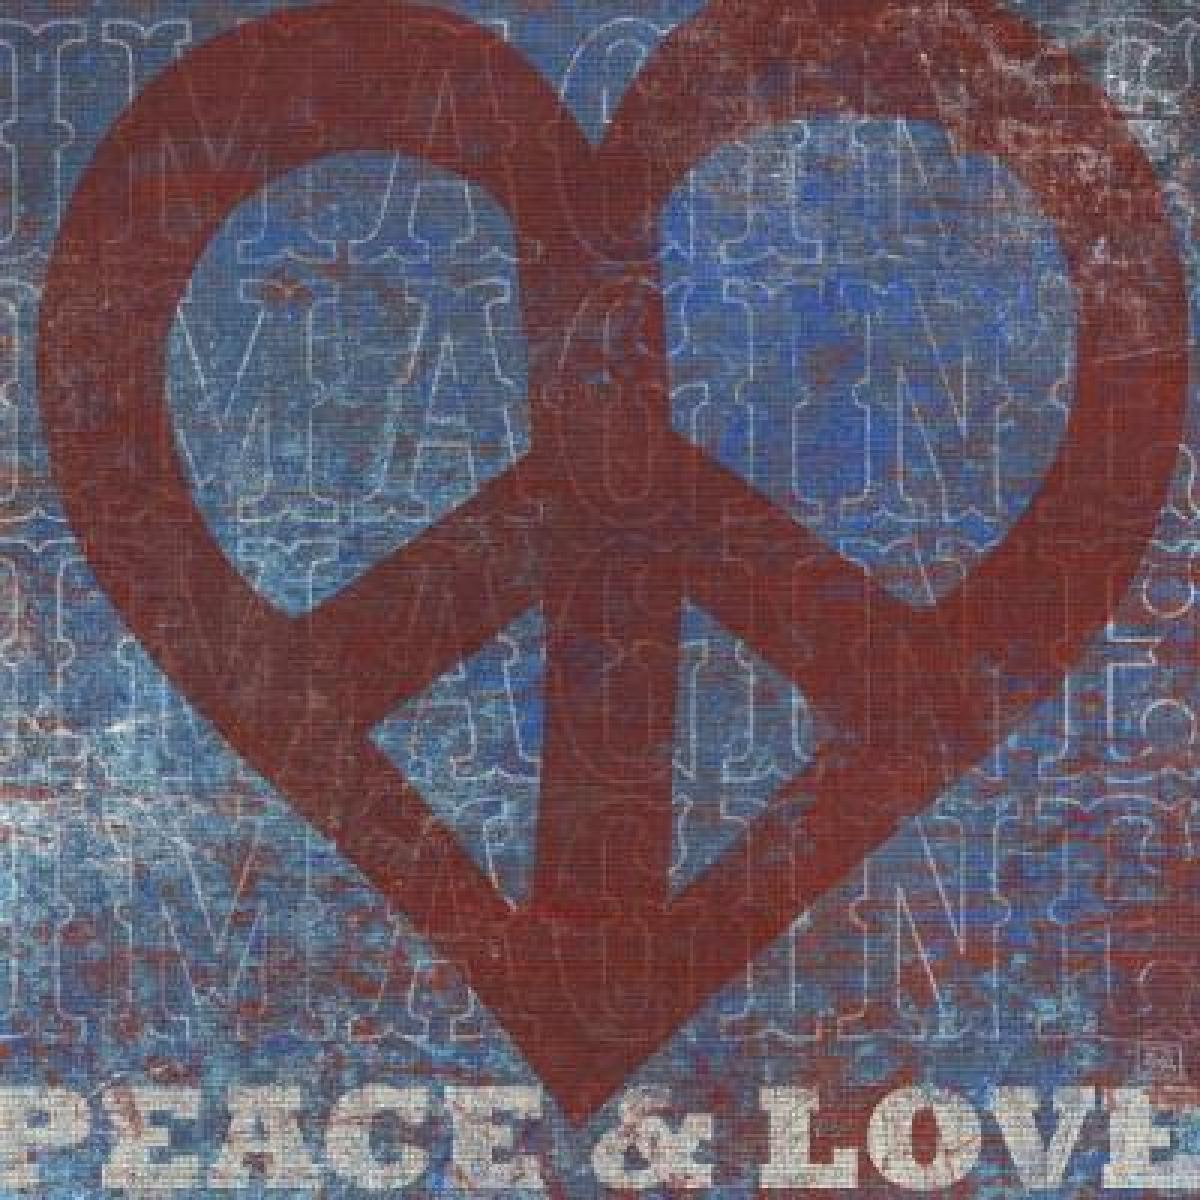 Imagine Peace Love(40in x 40in  Art Print)